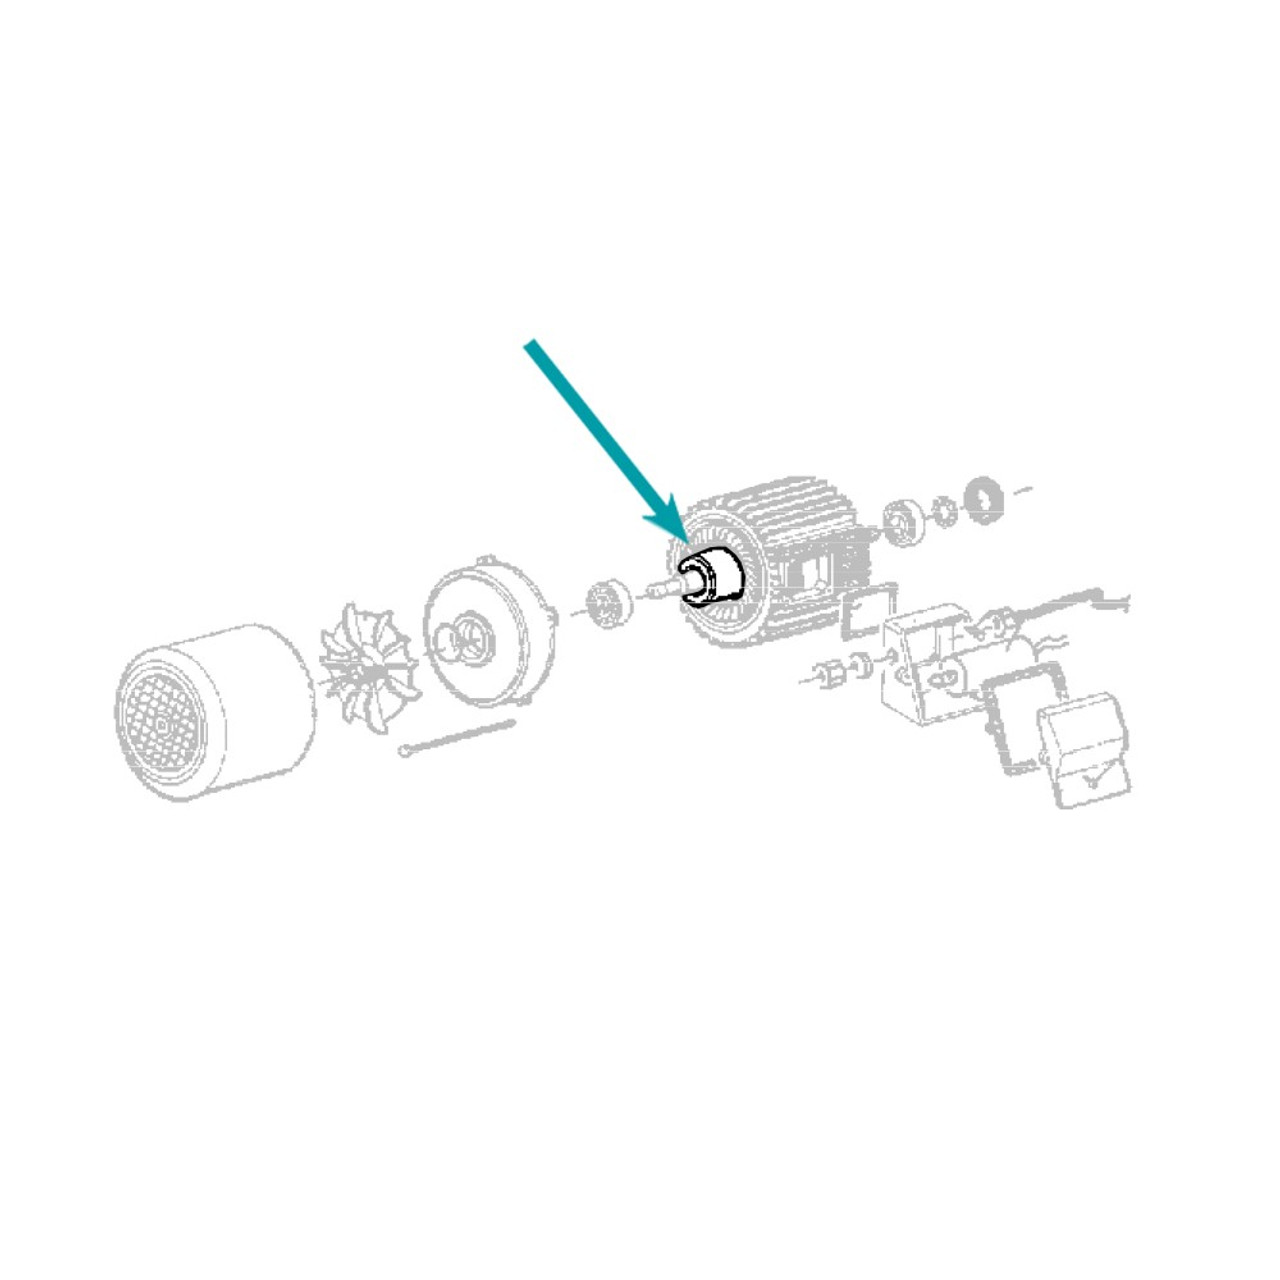 Imer Spare Part Mix 120 Gear Box Rotor